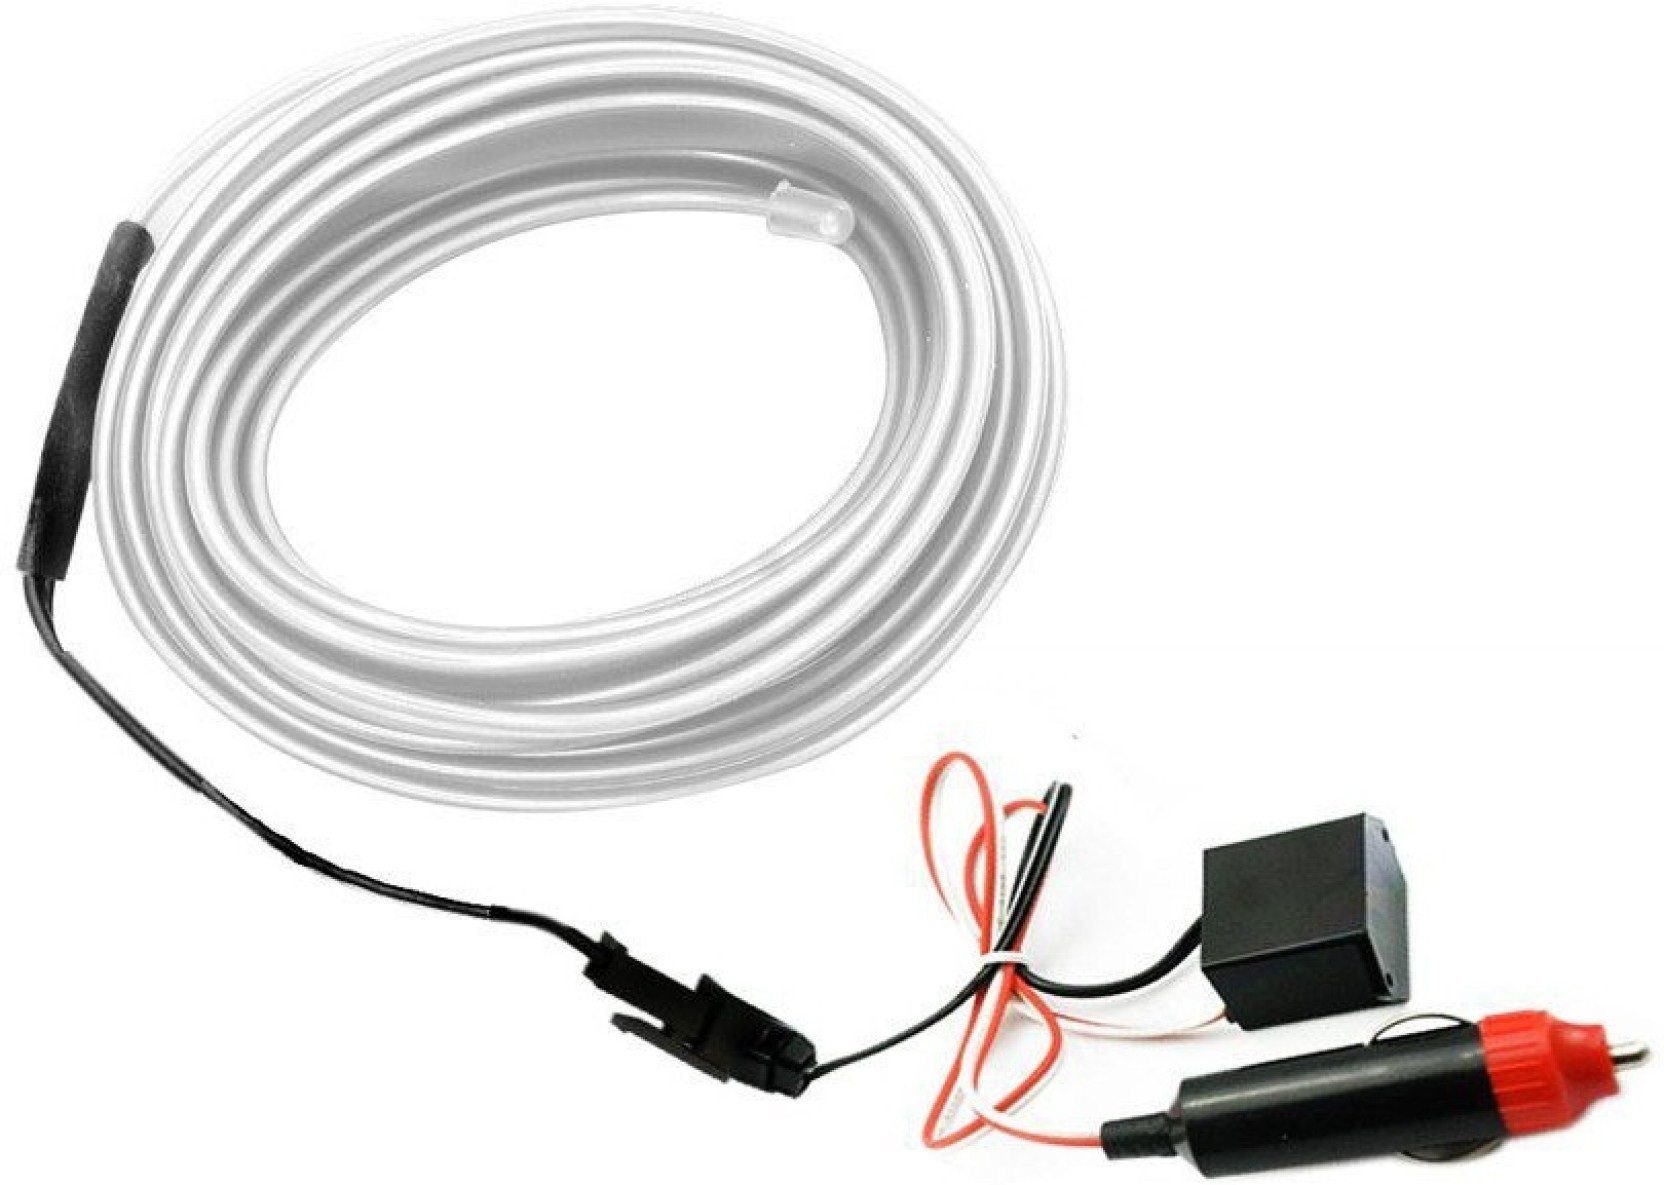 Basic Electrical Wiring With 4 Wires Further Car Headlight Wiring